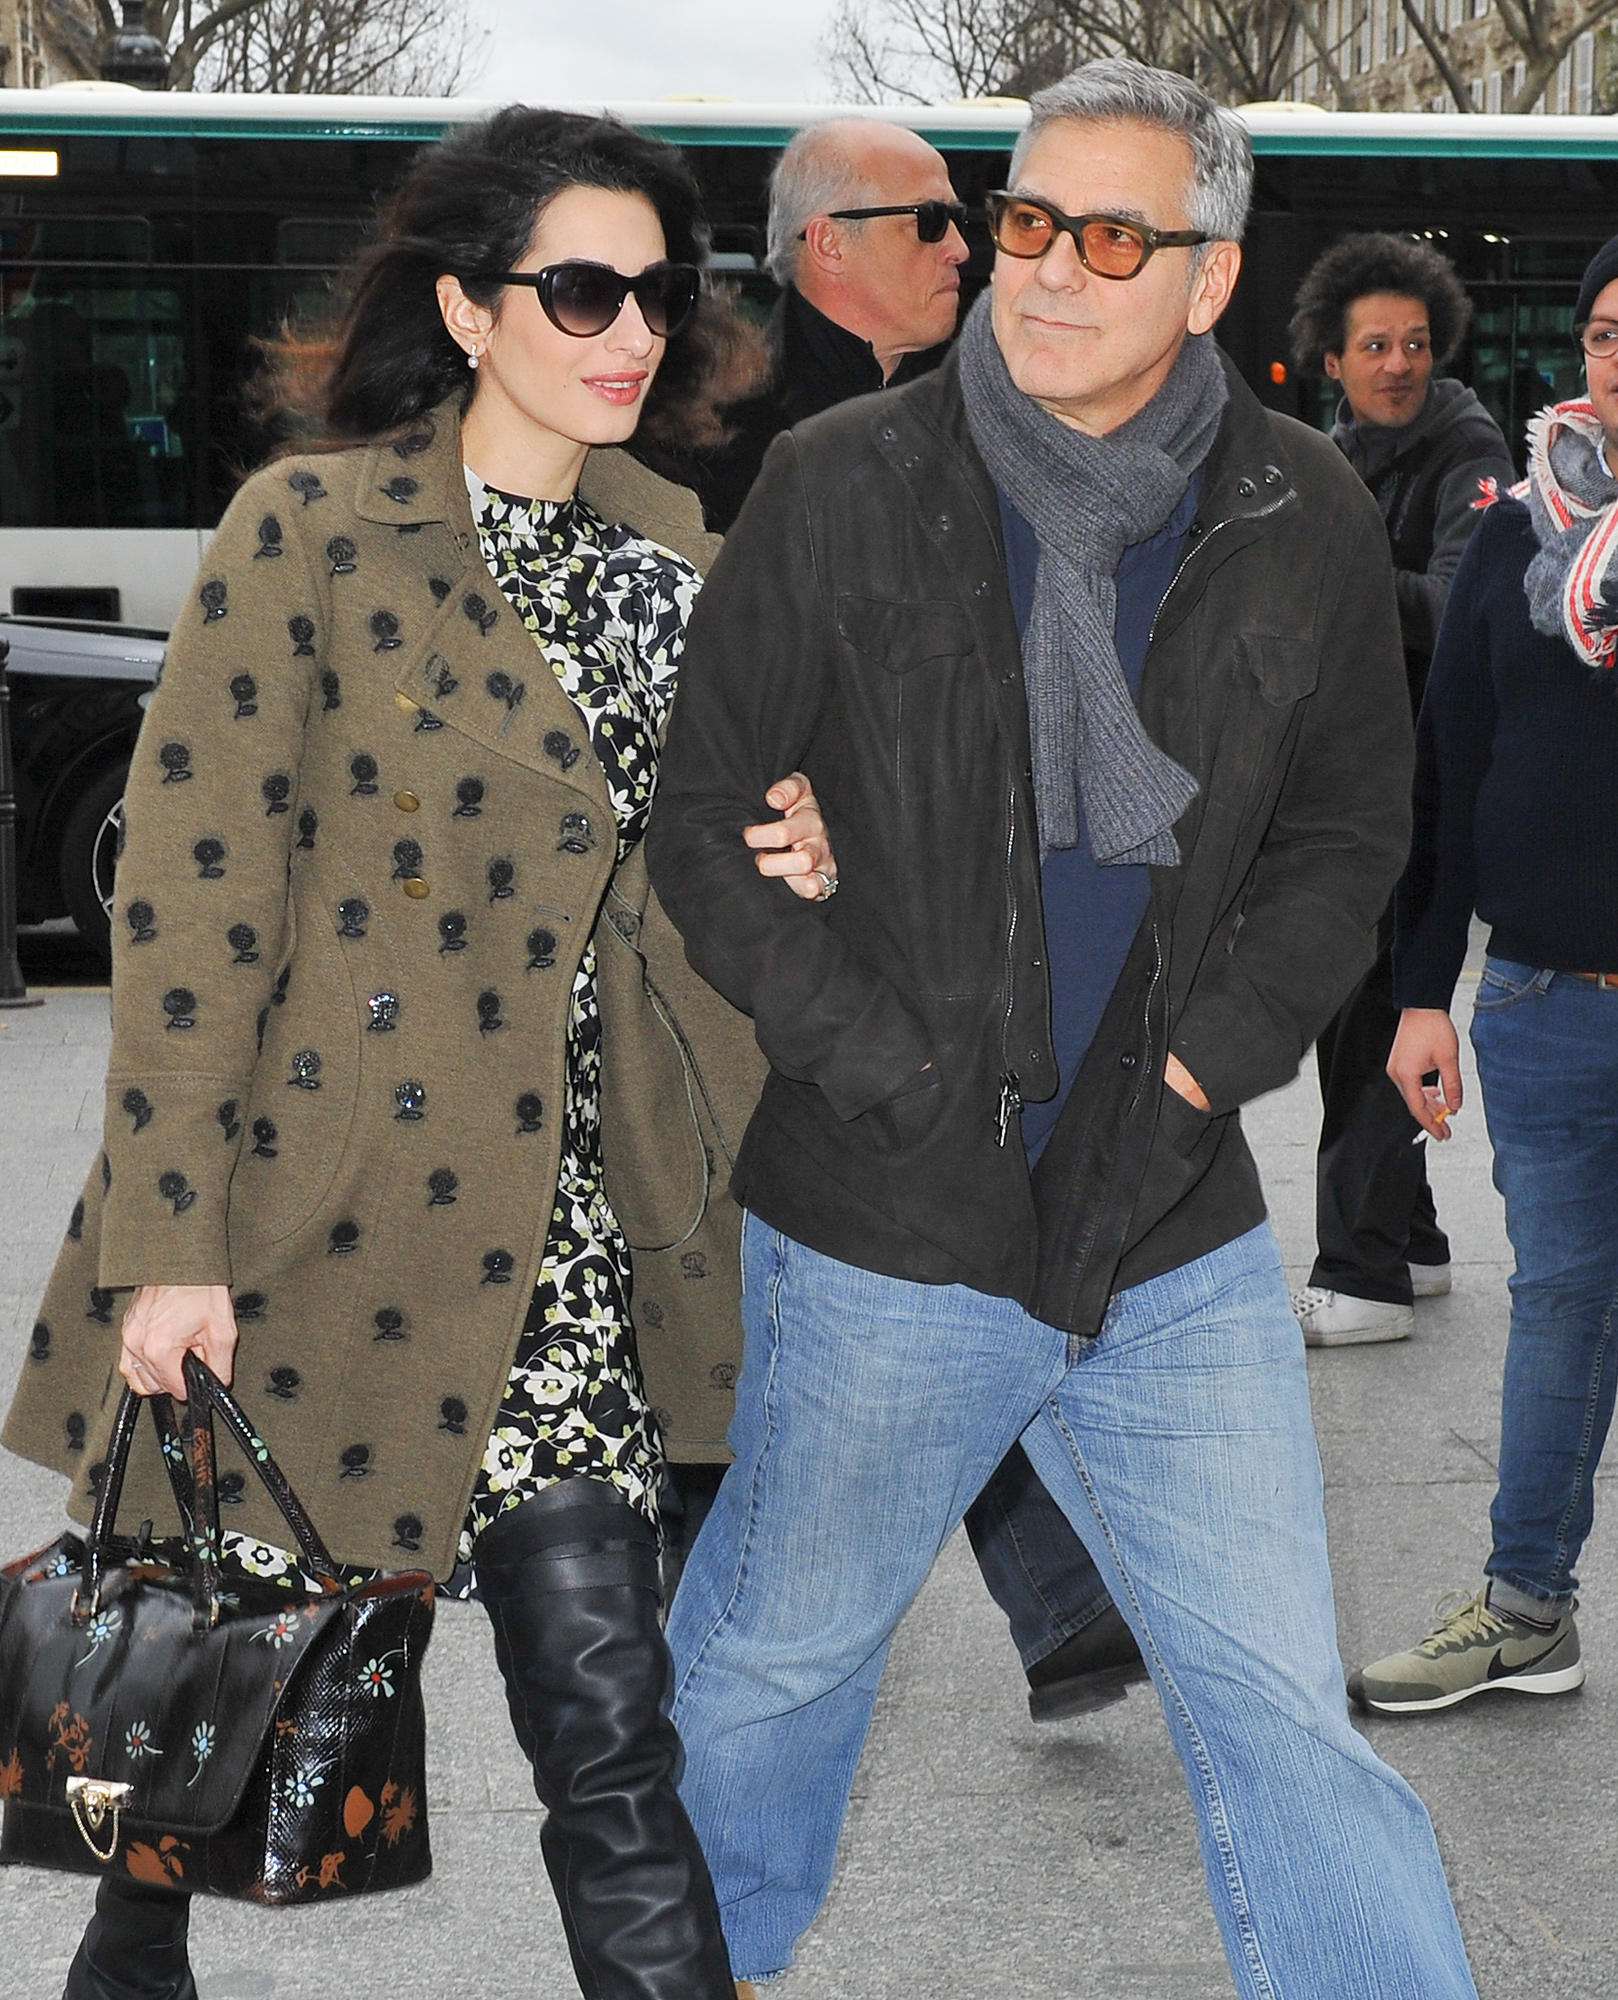 George Clooney and his pregnant wife Amal Clooney go to Gare du Nord to take a Eurostar back to London, in Paris.